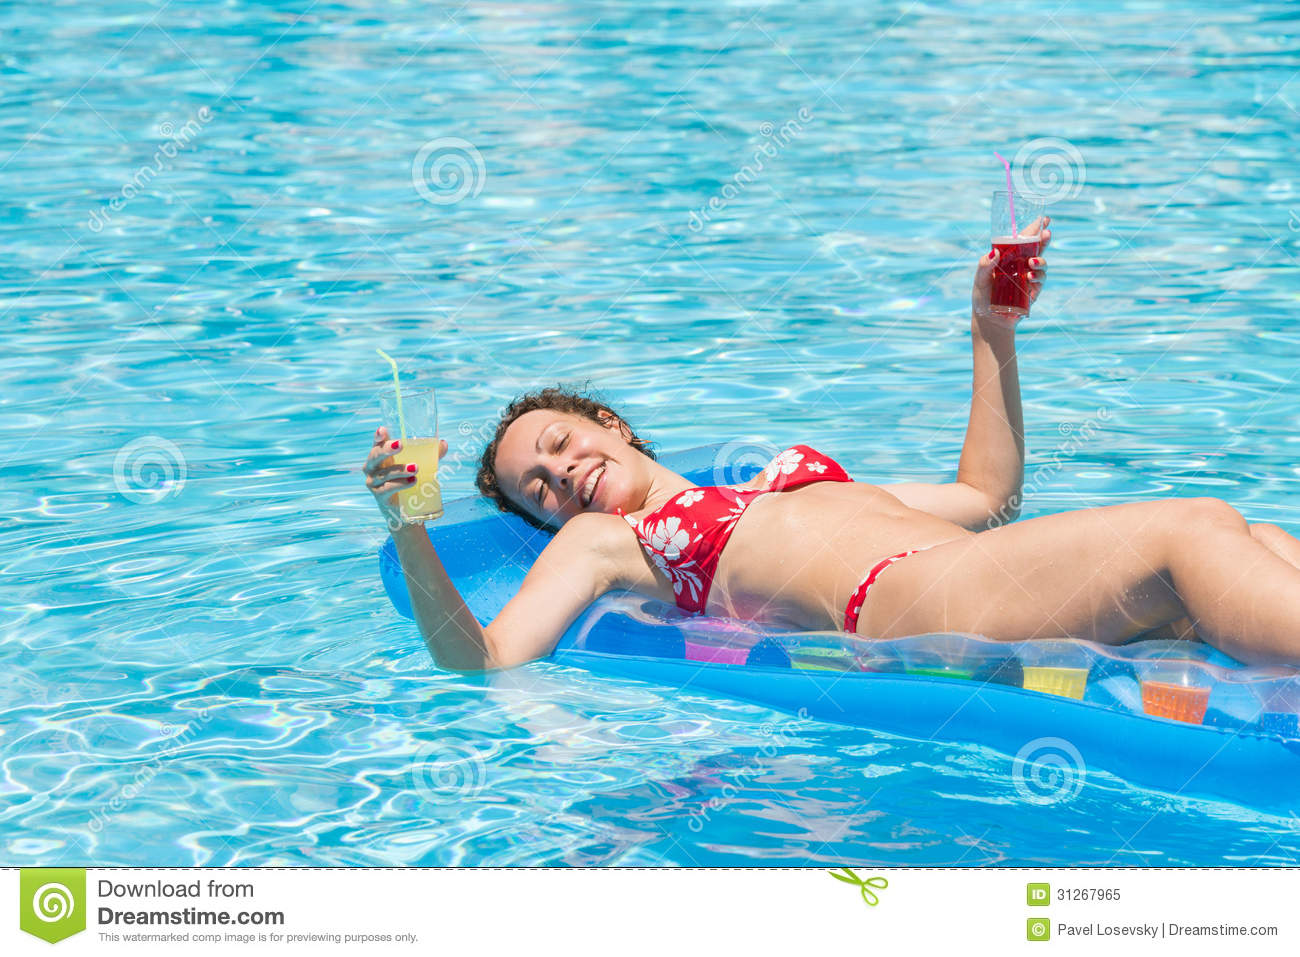 Woman Swimming In The Pool On An Inflatable Mattress